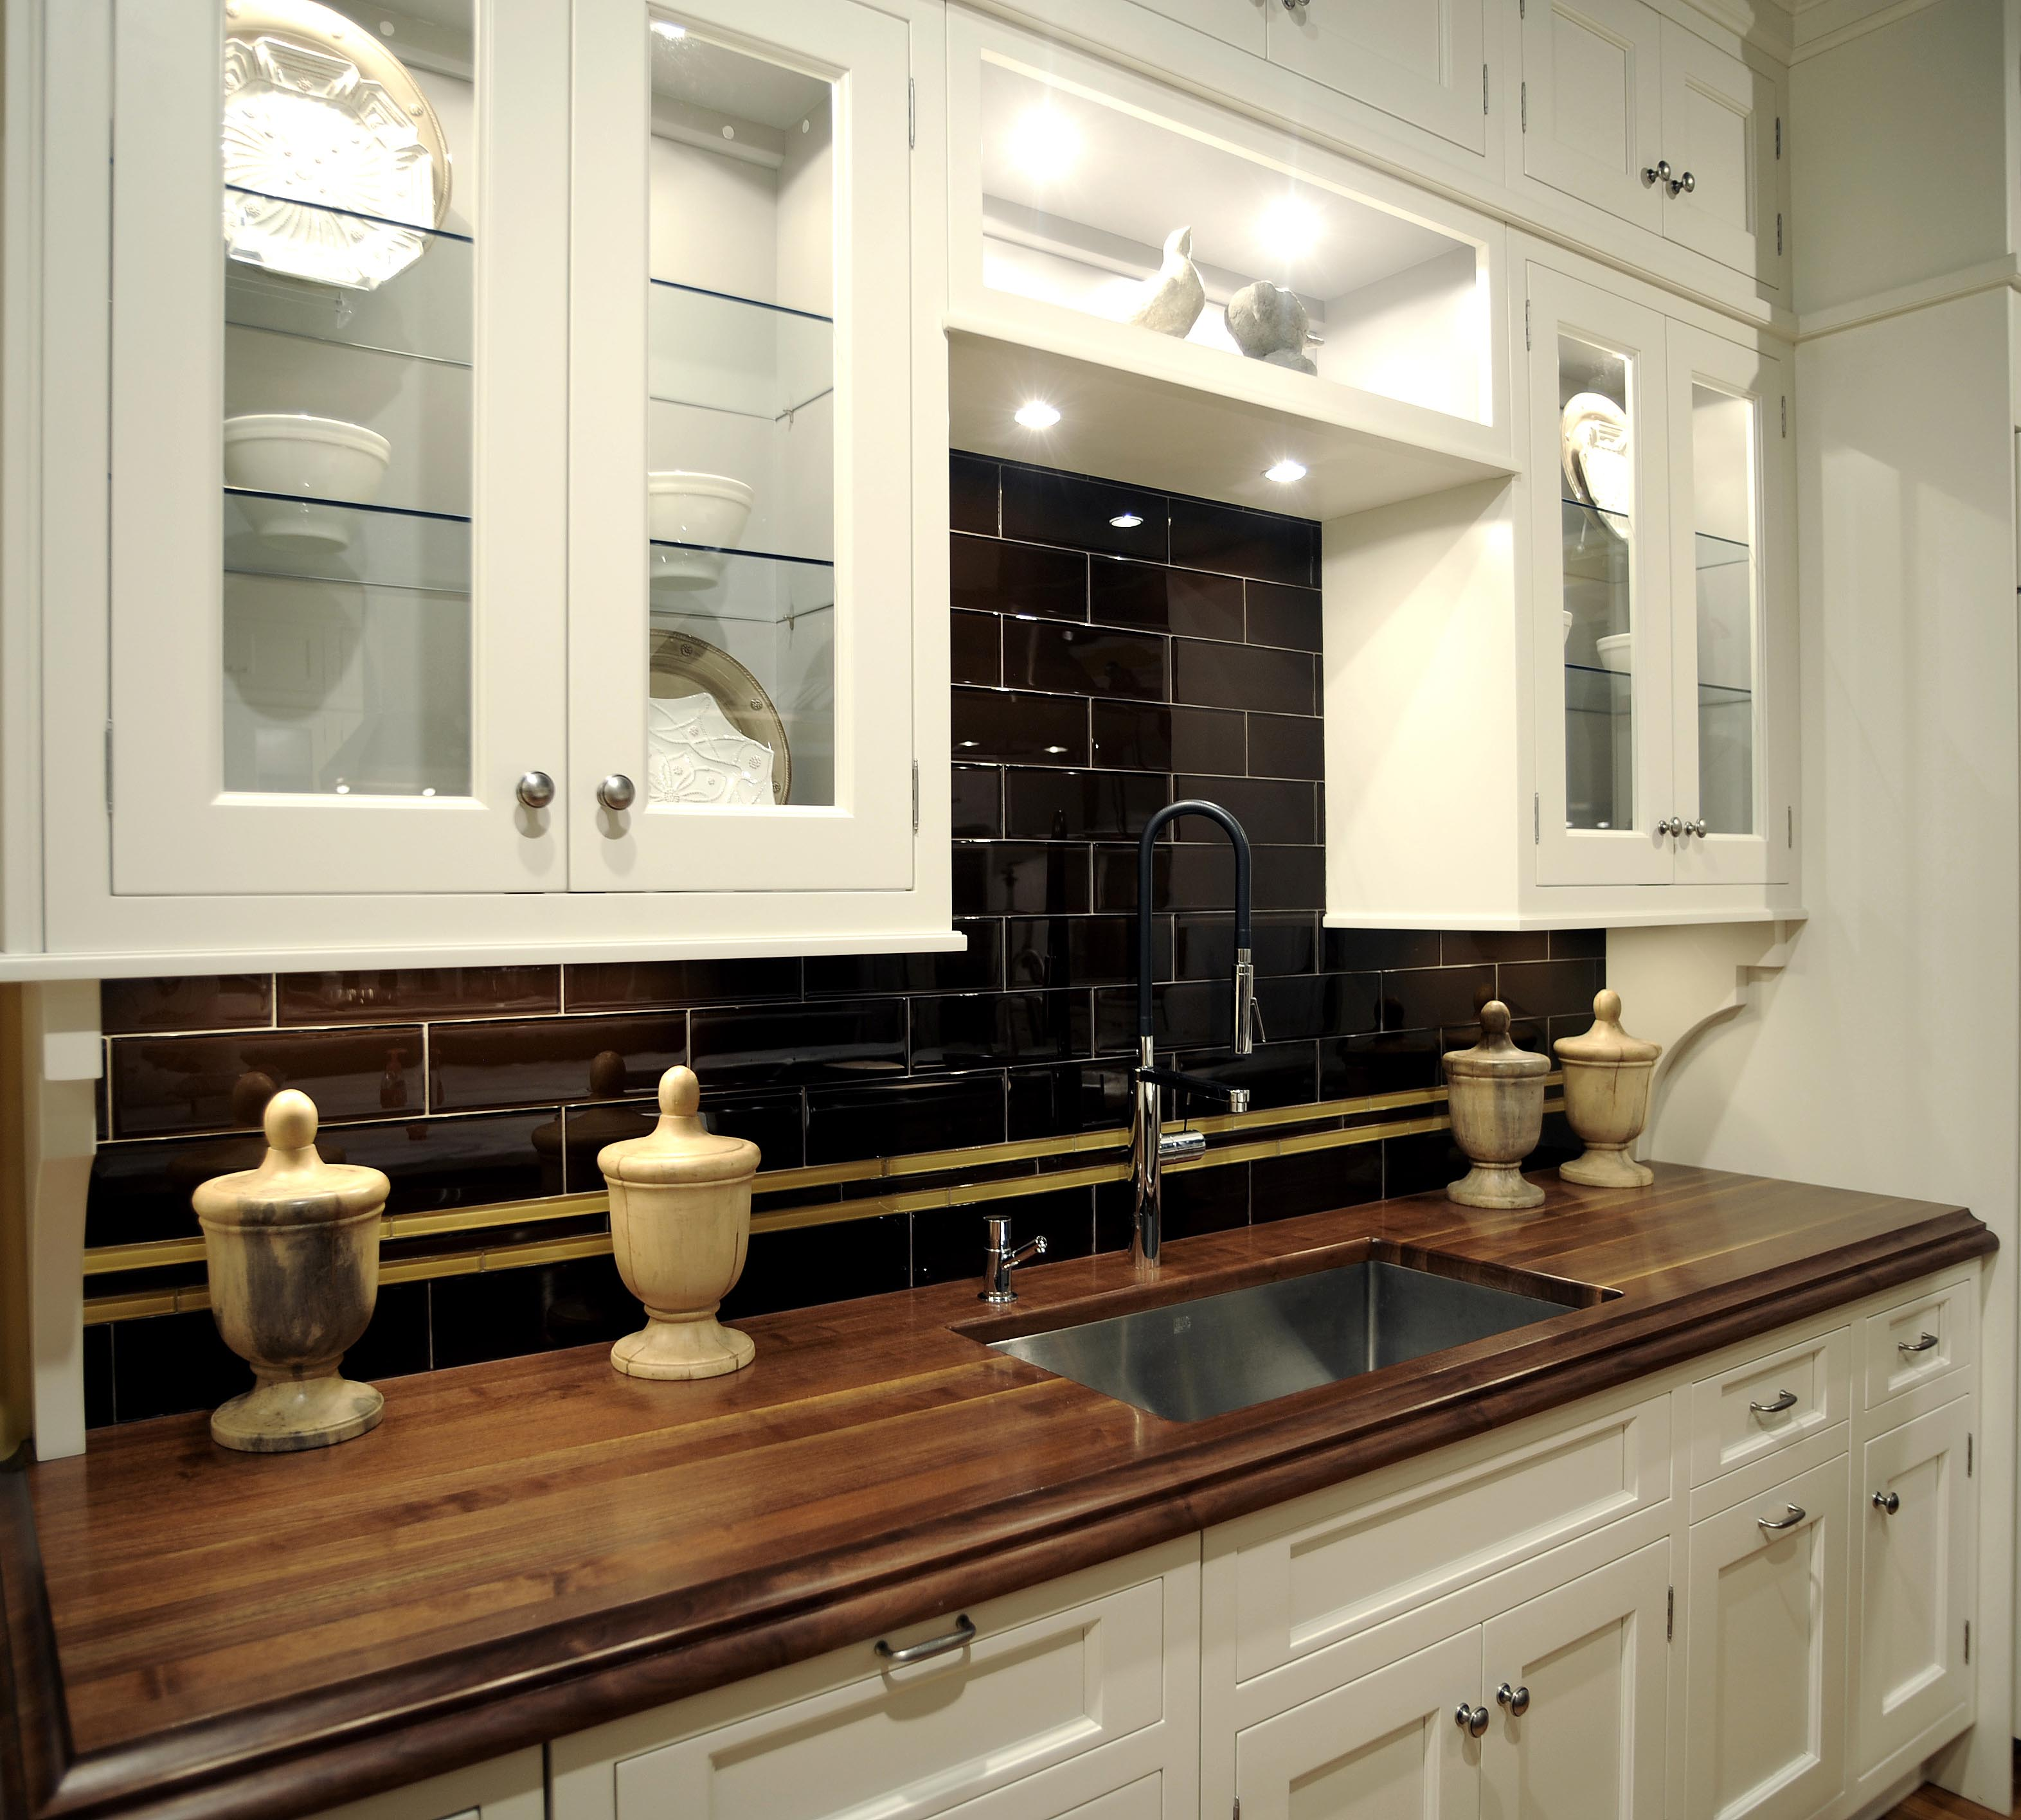 white-wooden-kitchen-cabinet-with-butcher-block-countertop-and-elegant-black-tile-backsplash-for-modern-kitchen-decor-idea